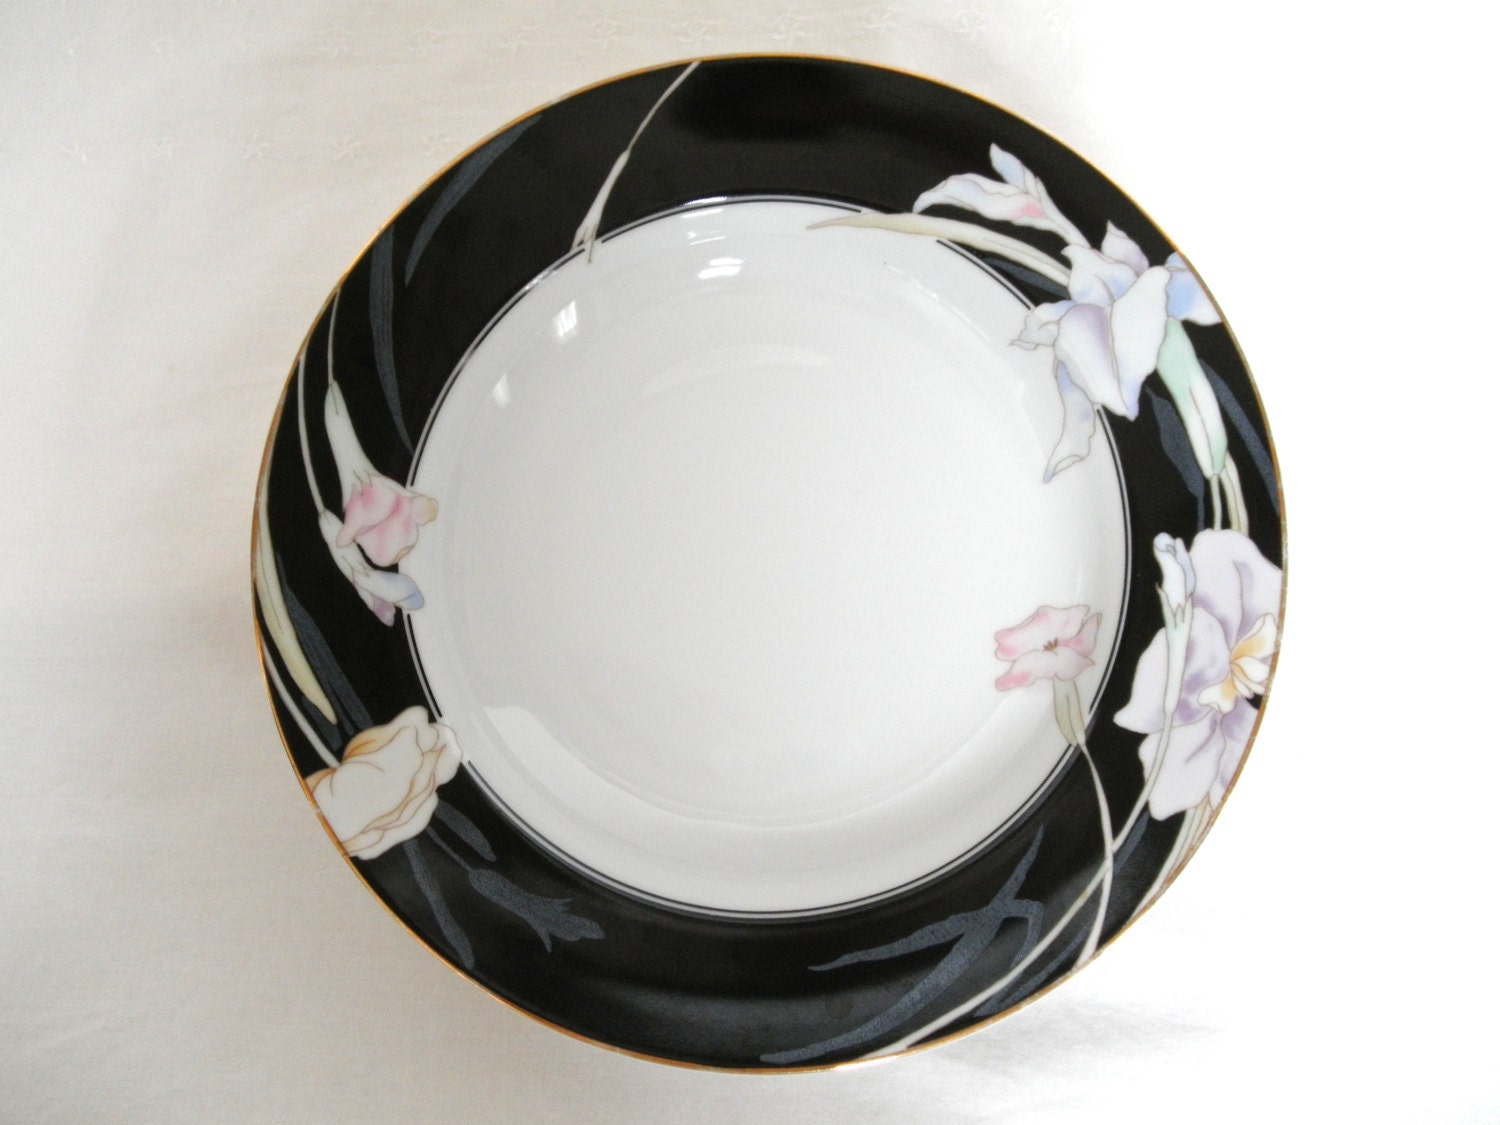 Mikasa Bowl Charisma Black China L9050 Dinnerware